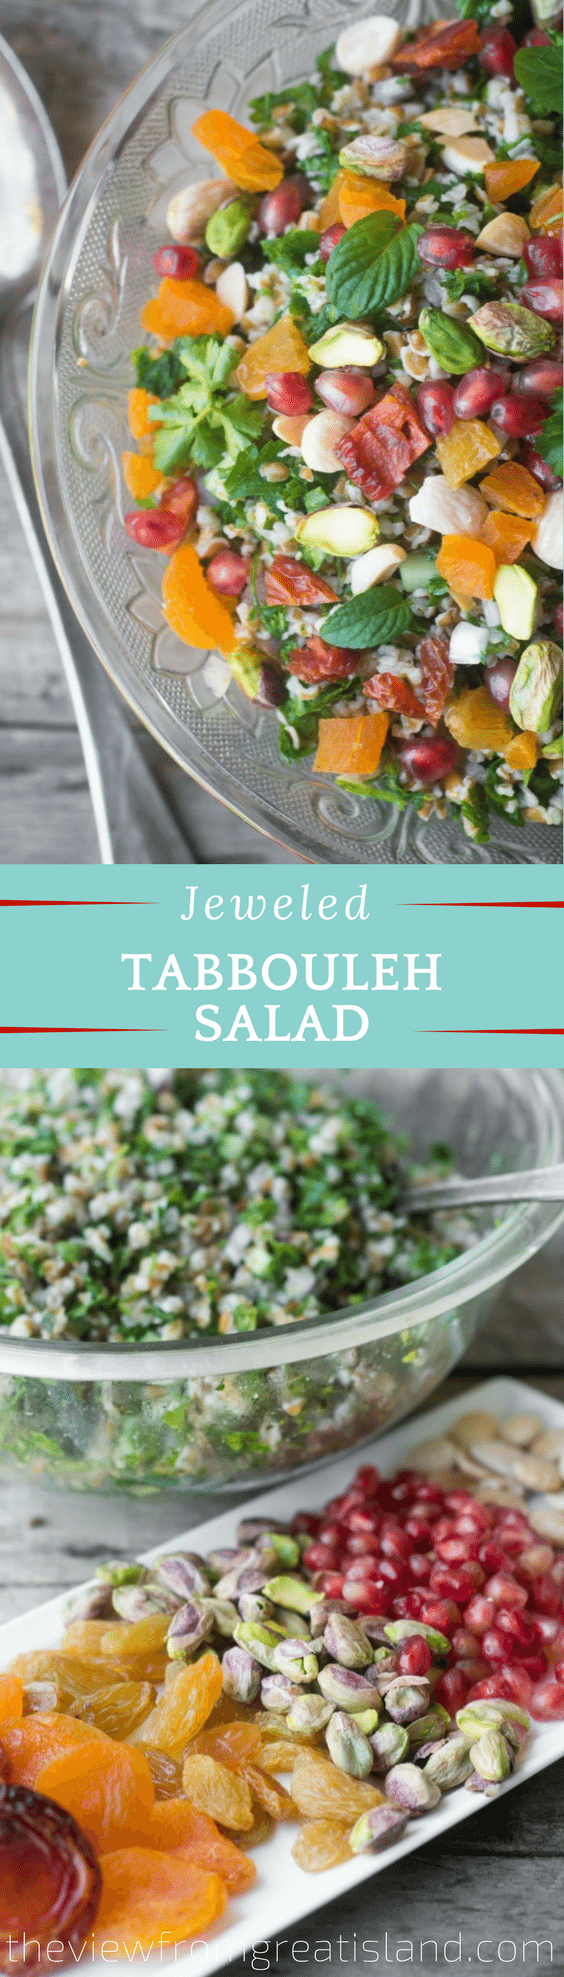 Jeweled Tabbouleh Salad is a healthy Mediterranean cracked wheat salad studded with colorful, gem-like fruits and nuts...#salad #grainsalad #crackedwheat #bulgar #middleeastern #mediterranean #healthy #sidedish #Valentinesday #lunch #brunch #nomayosalad #wholegrain #driedfruit #nuts